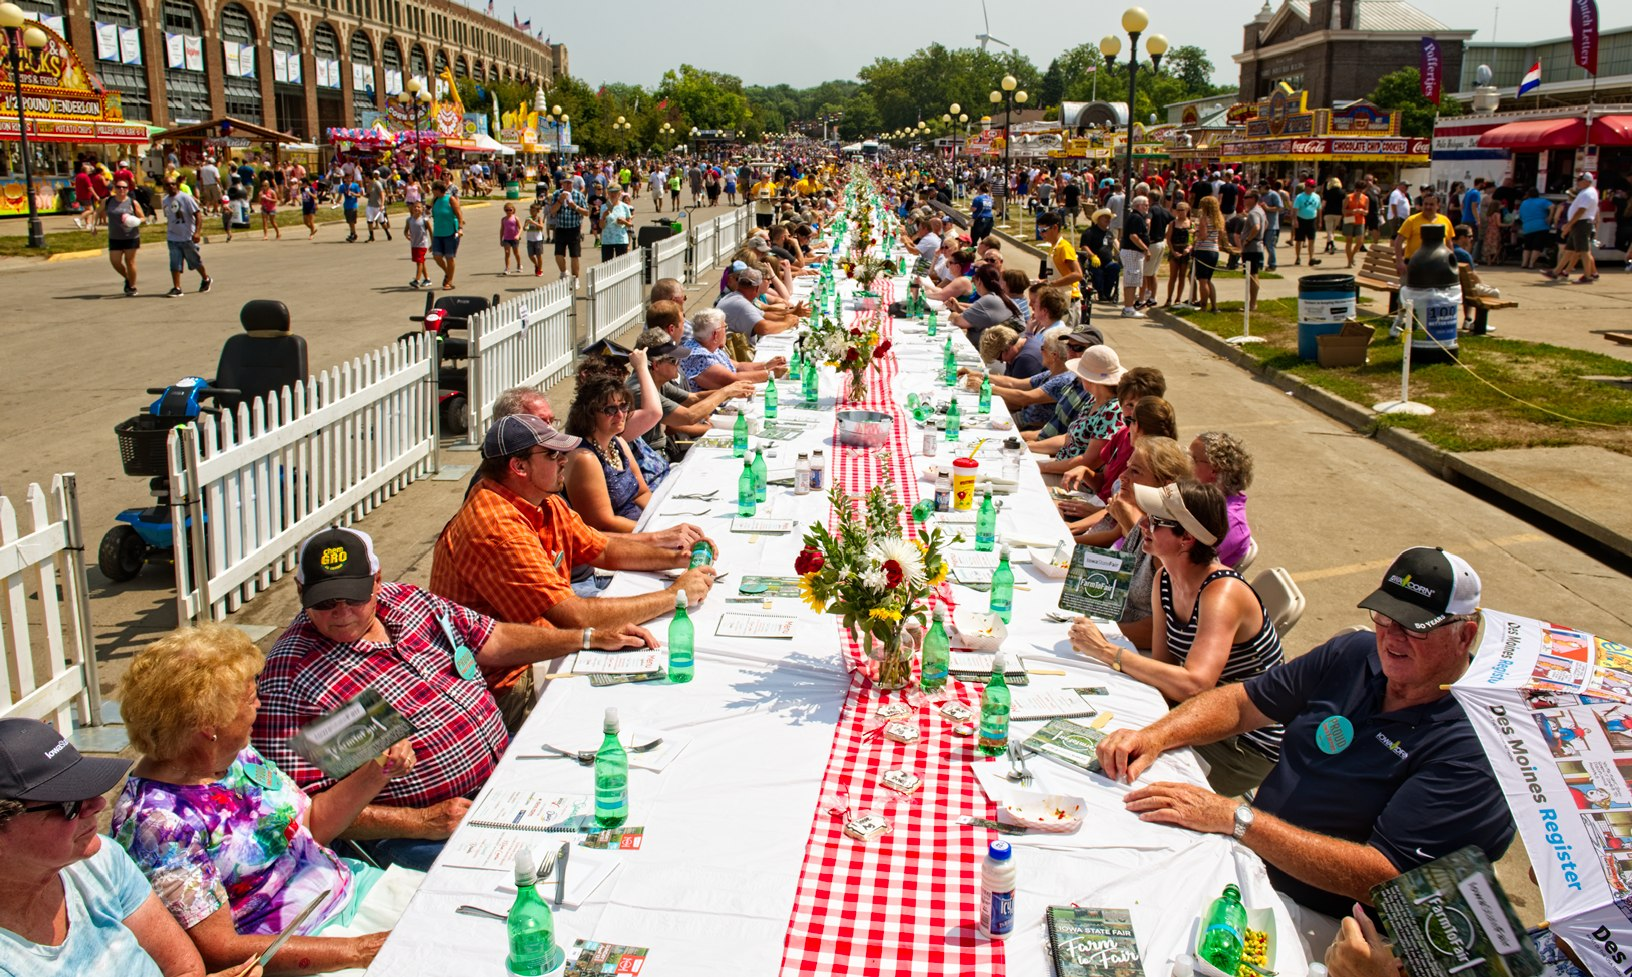 More than 500 fairgoers dined on the Grand Concourse during the Iowa State Fair at the inaugural Farm to Fair event. Photo credit: Joseph L. Murphy/Iowa Soybean Association